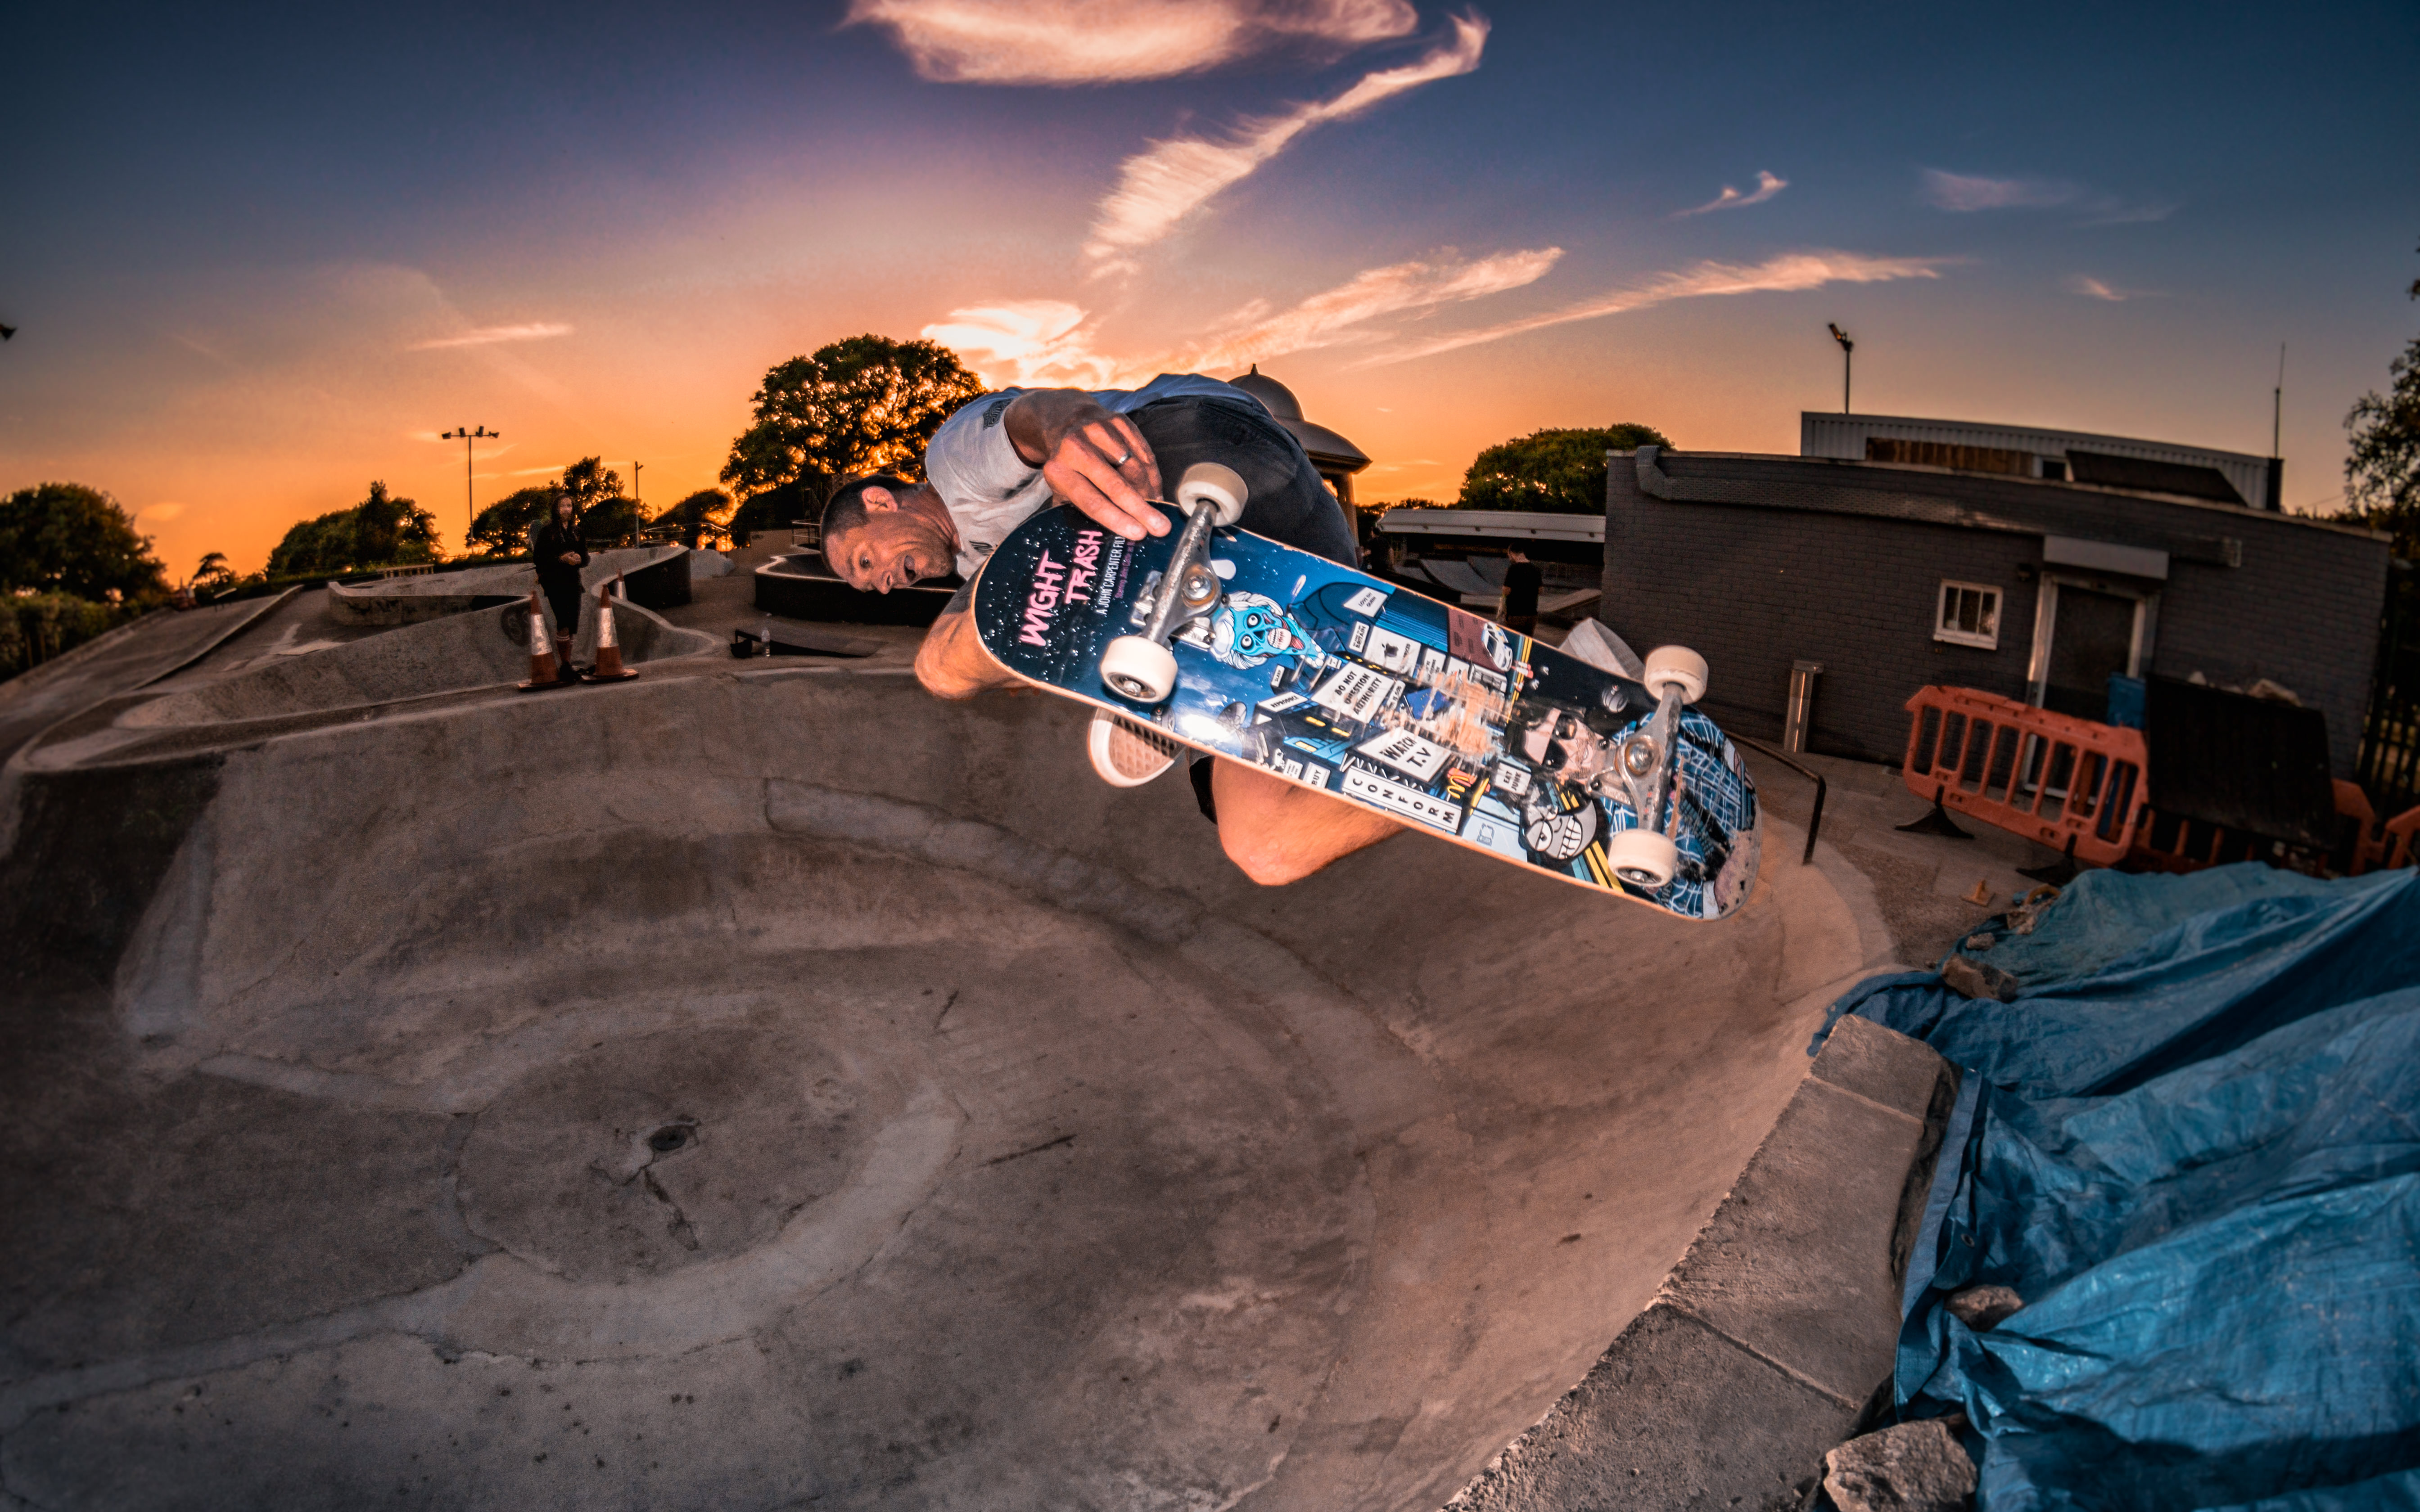 Backside Air on the crust revealed by removal of the 'new' bowl at Southsea Skatepark | Photo - Paul Scott @oldskoolpaul